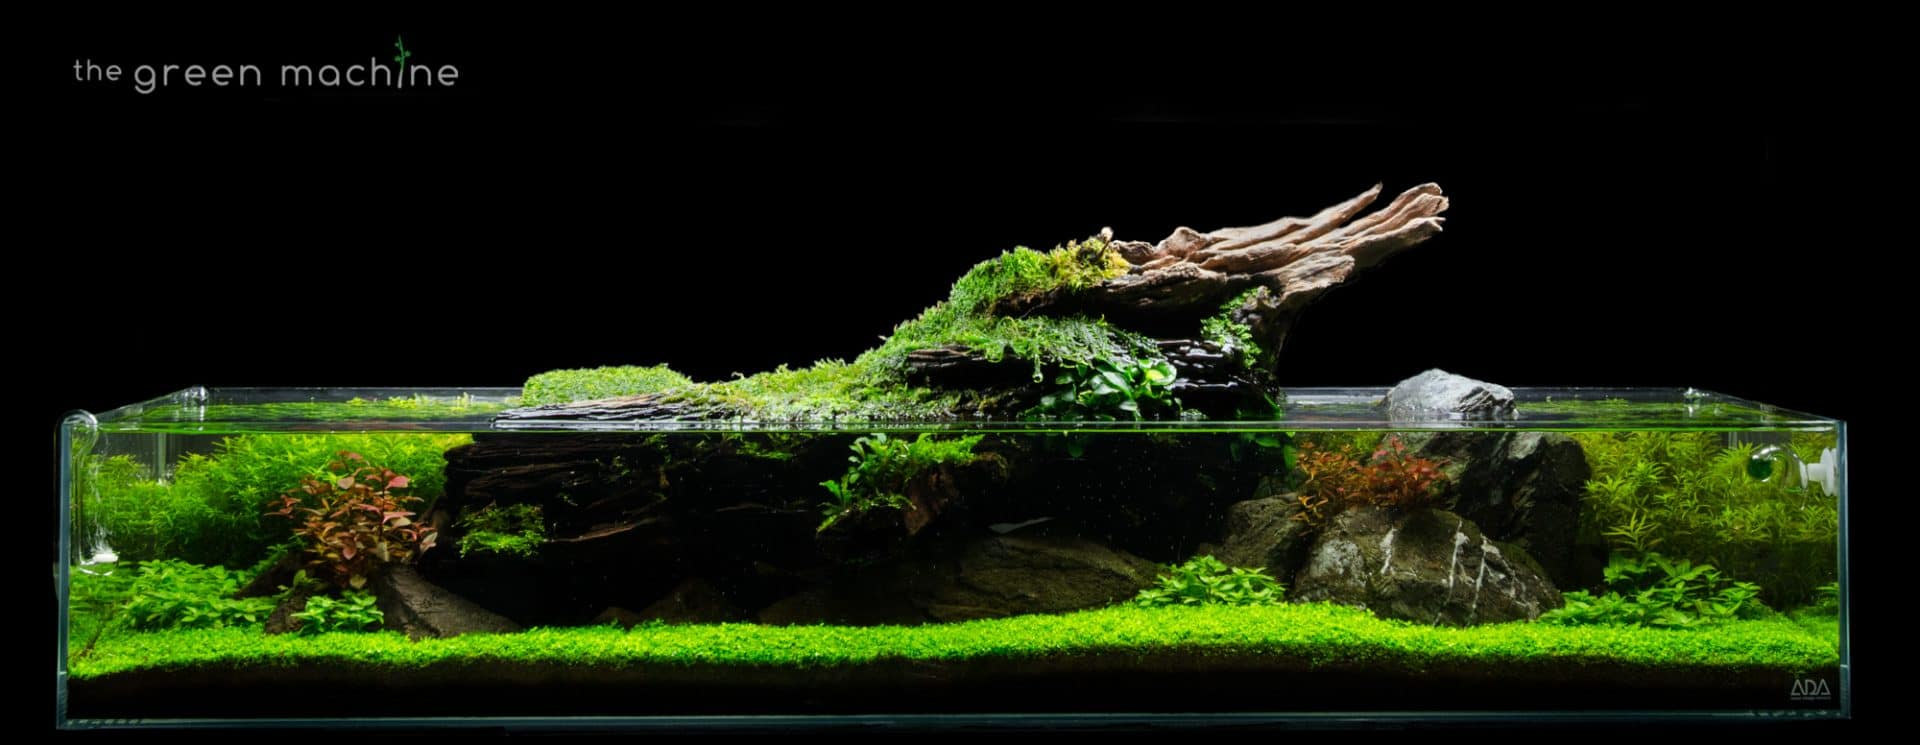 Shallow-Aquascape-by-James-Findley-The-Green-Machine-.jpg